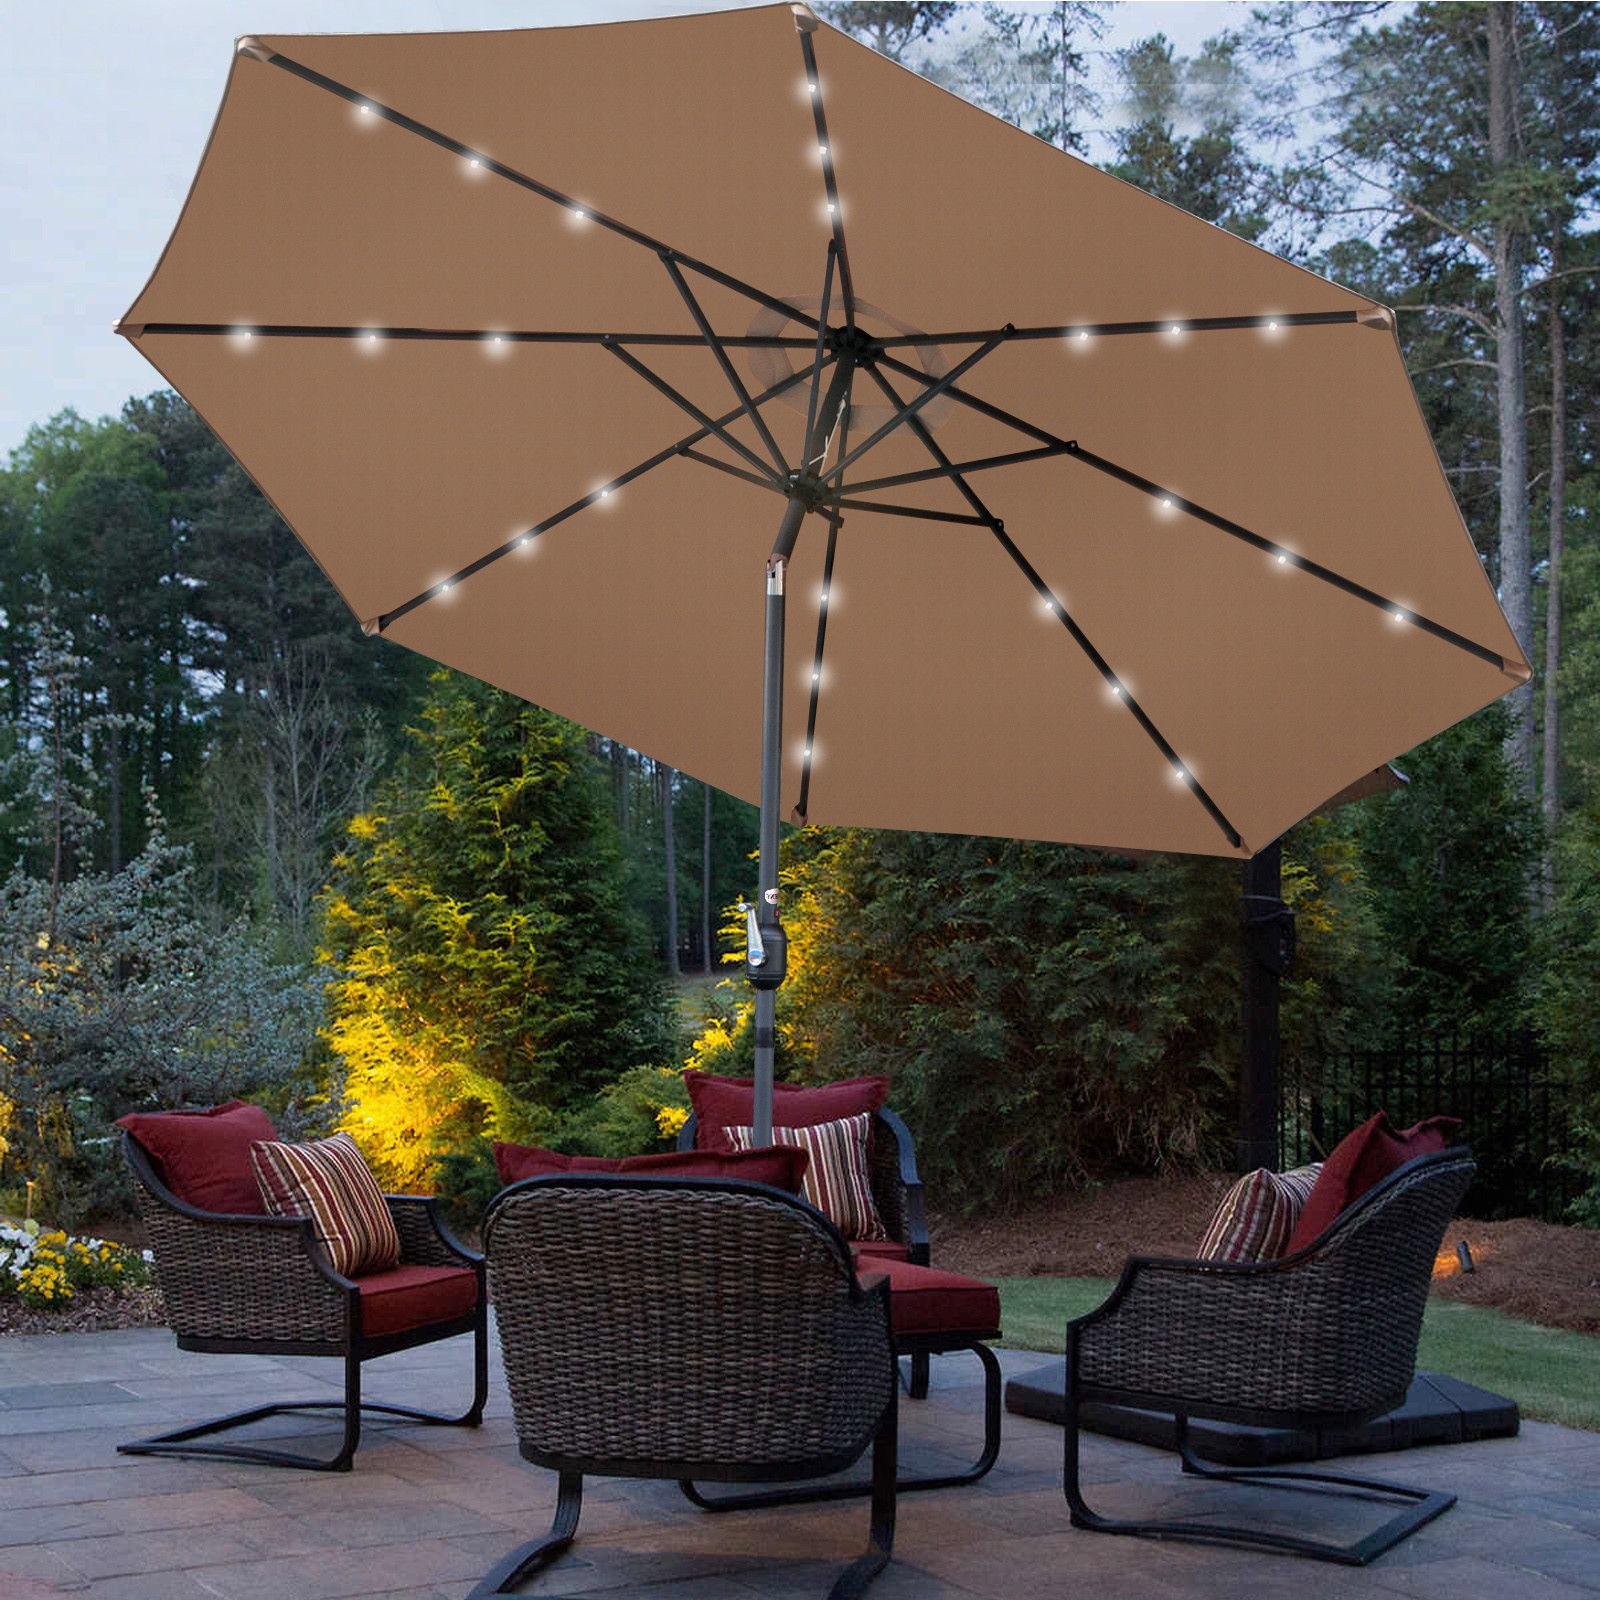 10Ft Lighted Patio Table 8 Ribs Tan